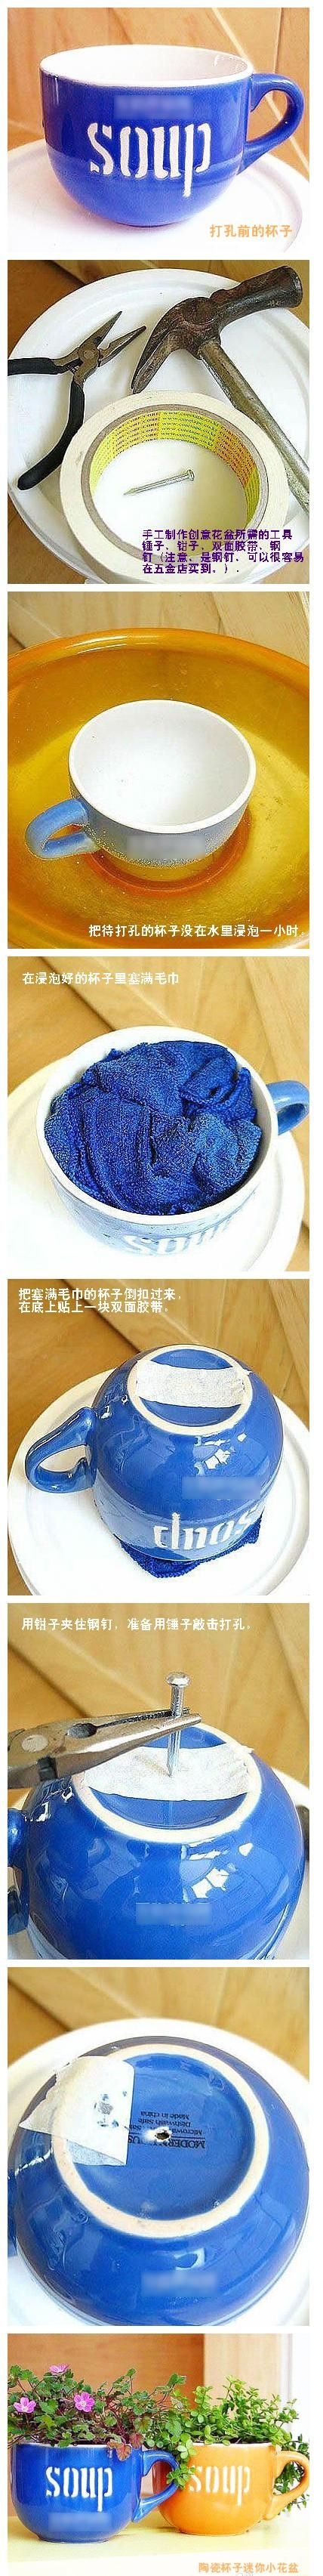 A flower pot from a ceramic soup bowl (It's in Chinese, but the pictures explain this idea pretty well)